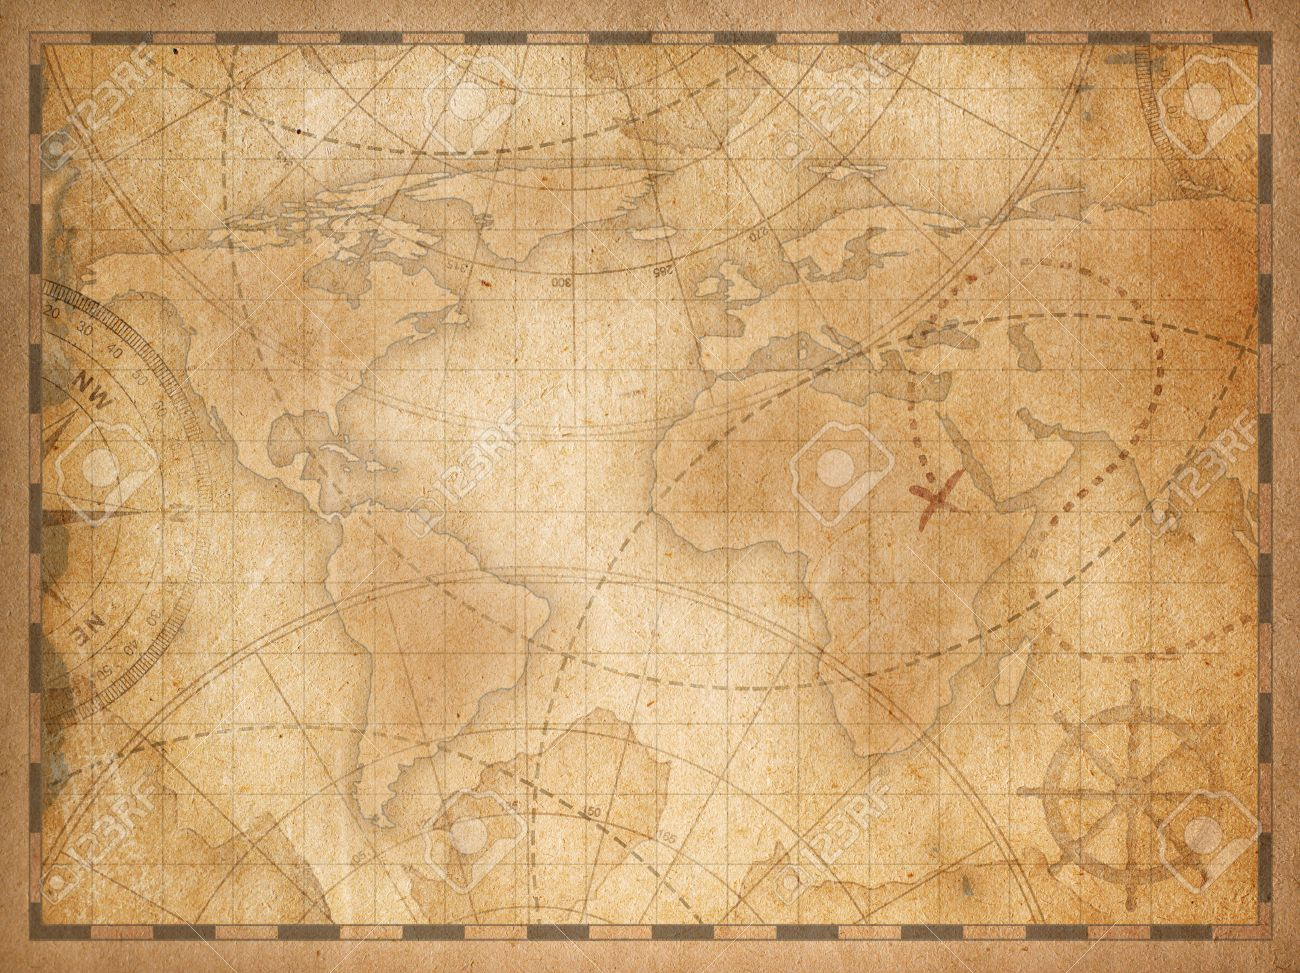 Old world map background stock photo picture and royalty free image old world map background stock photo 70098366 gumiabroncs Gallery